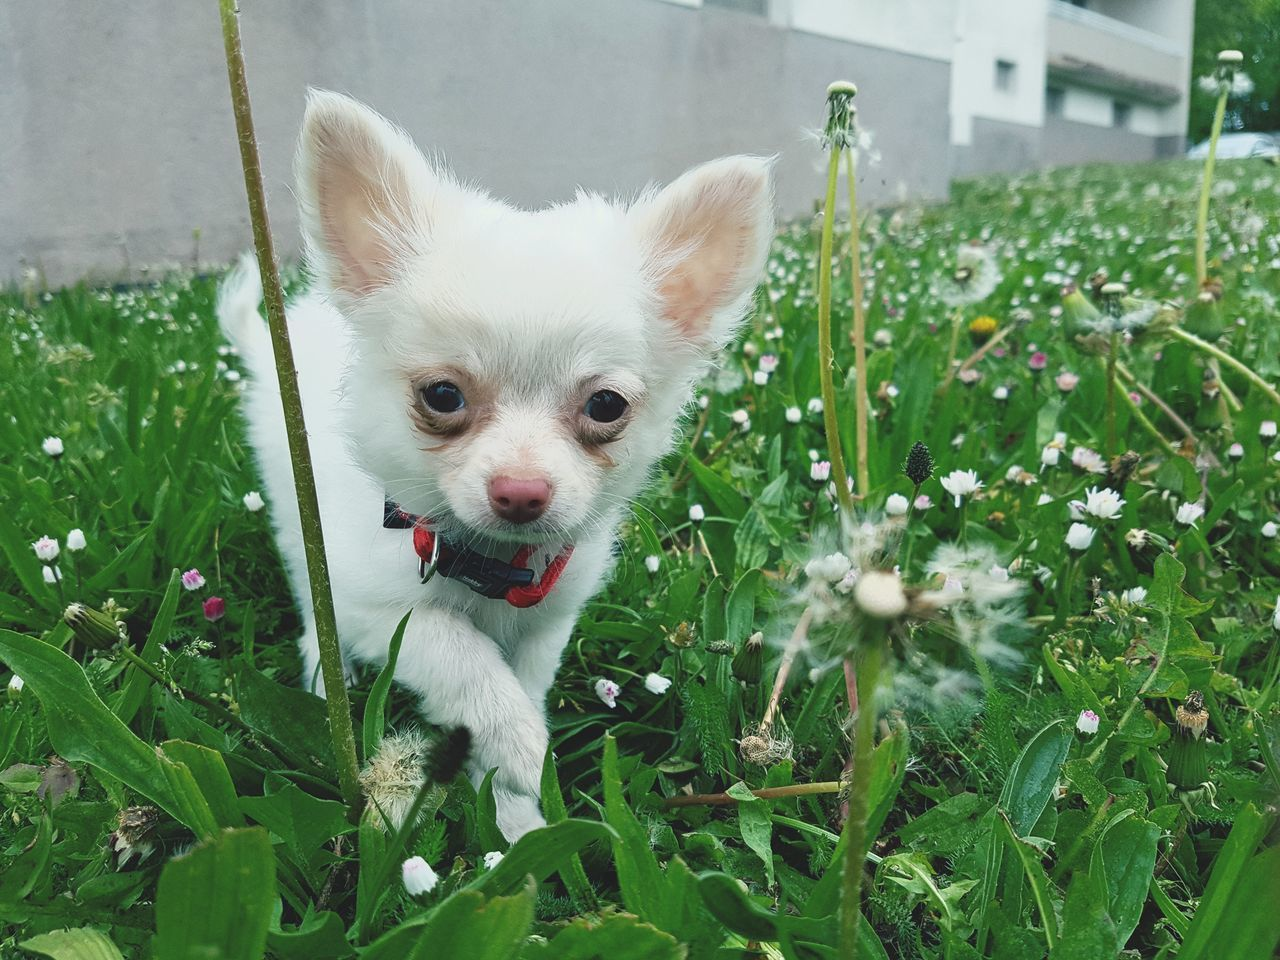 pets, one animal, domestic animals, animal themes, dog, mammal, grass, growth, outdoors, green color, plant, no people, day, flower, close-up, nature